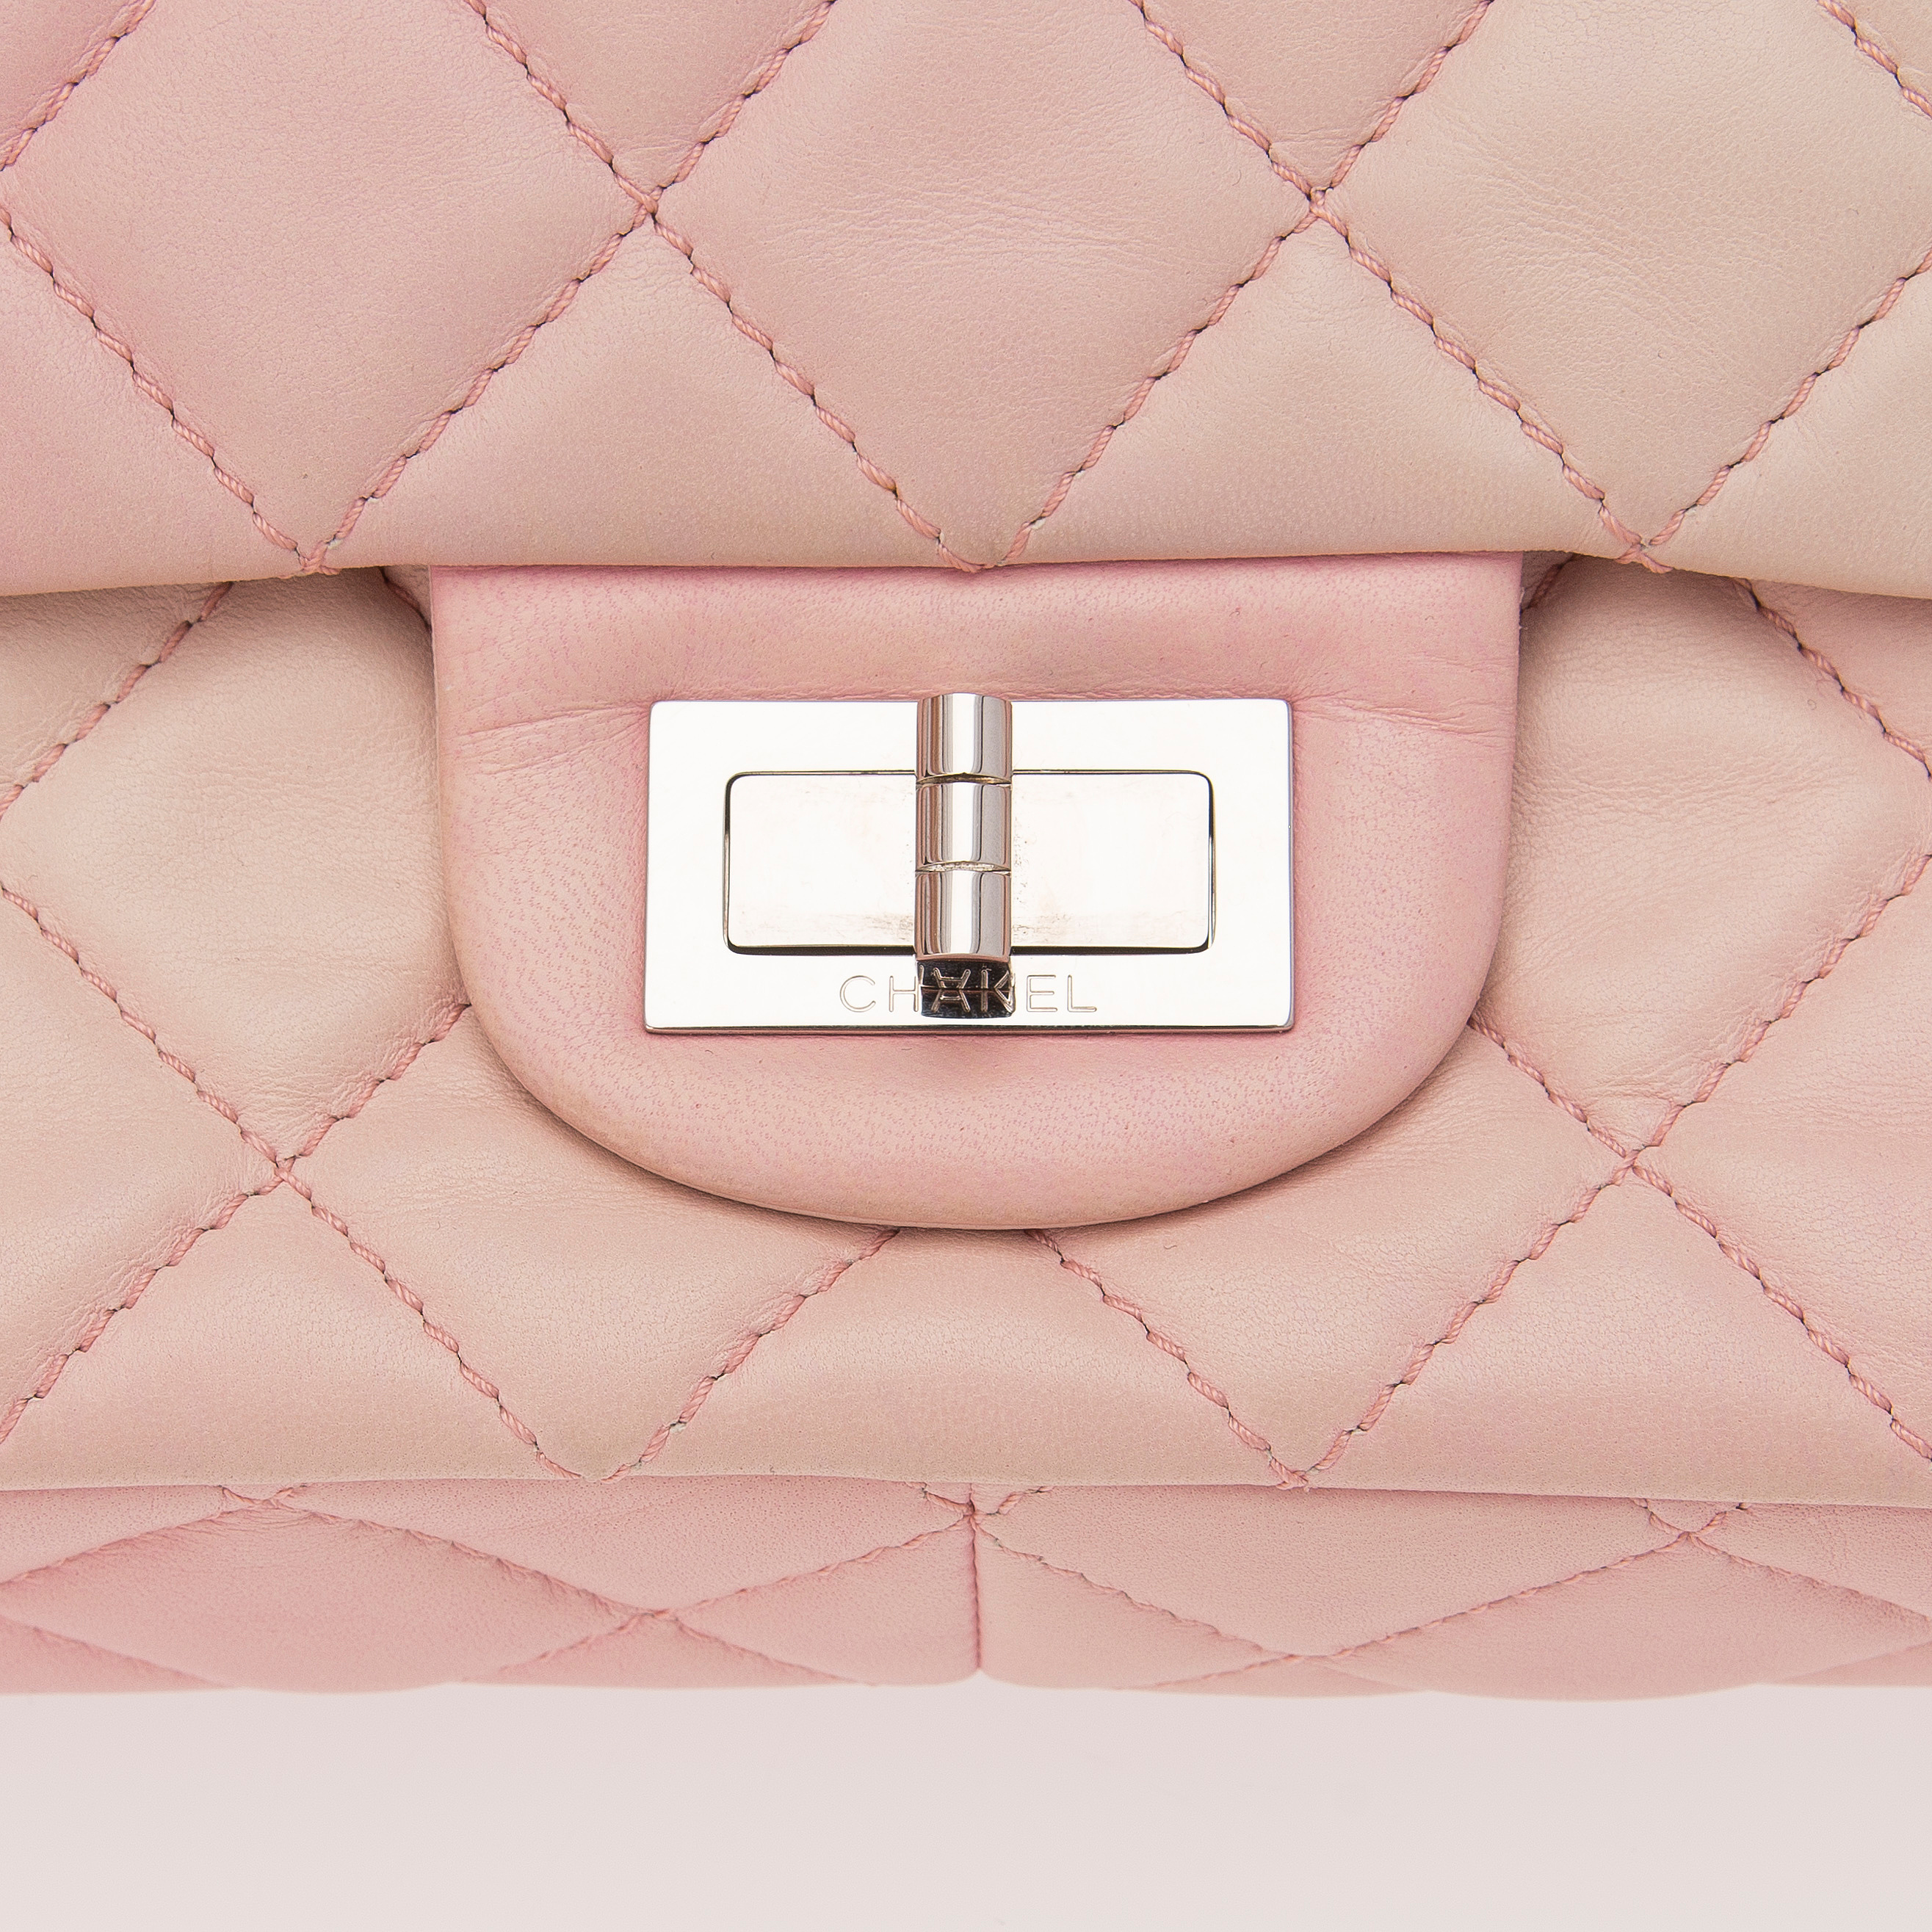 25e8465ff1e7 Pink White Ombre Degrade 2.55 Reissue 227 Jumbo Double Flap Bag. - Bukowskis